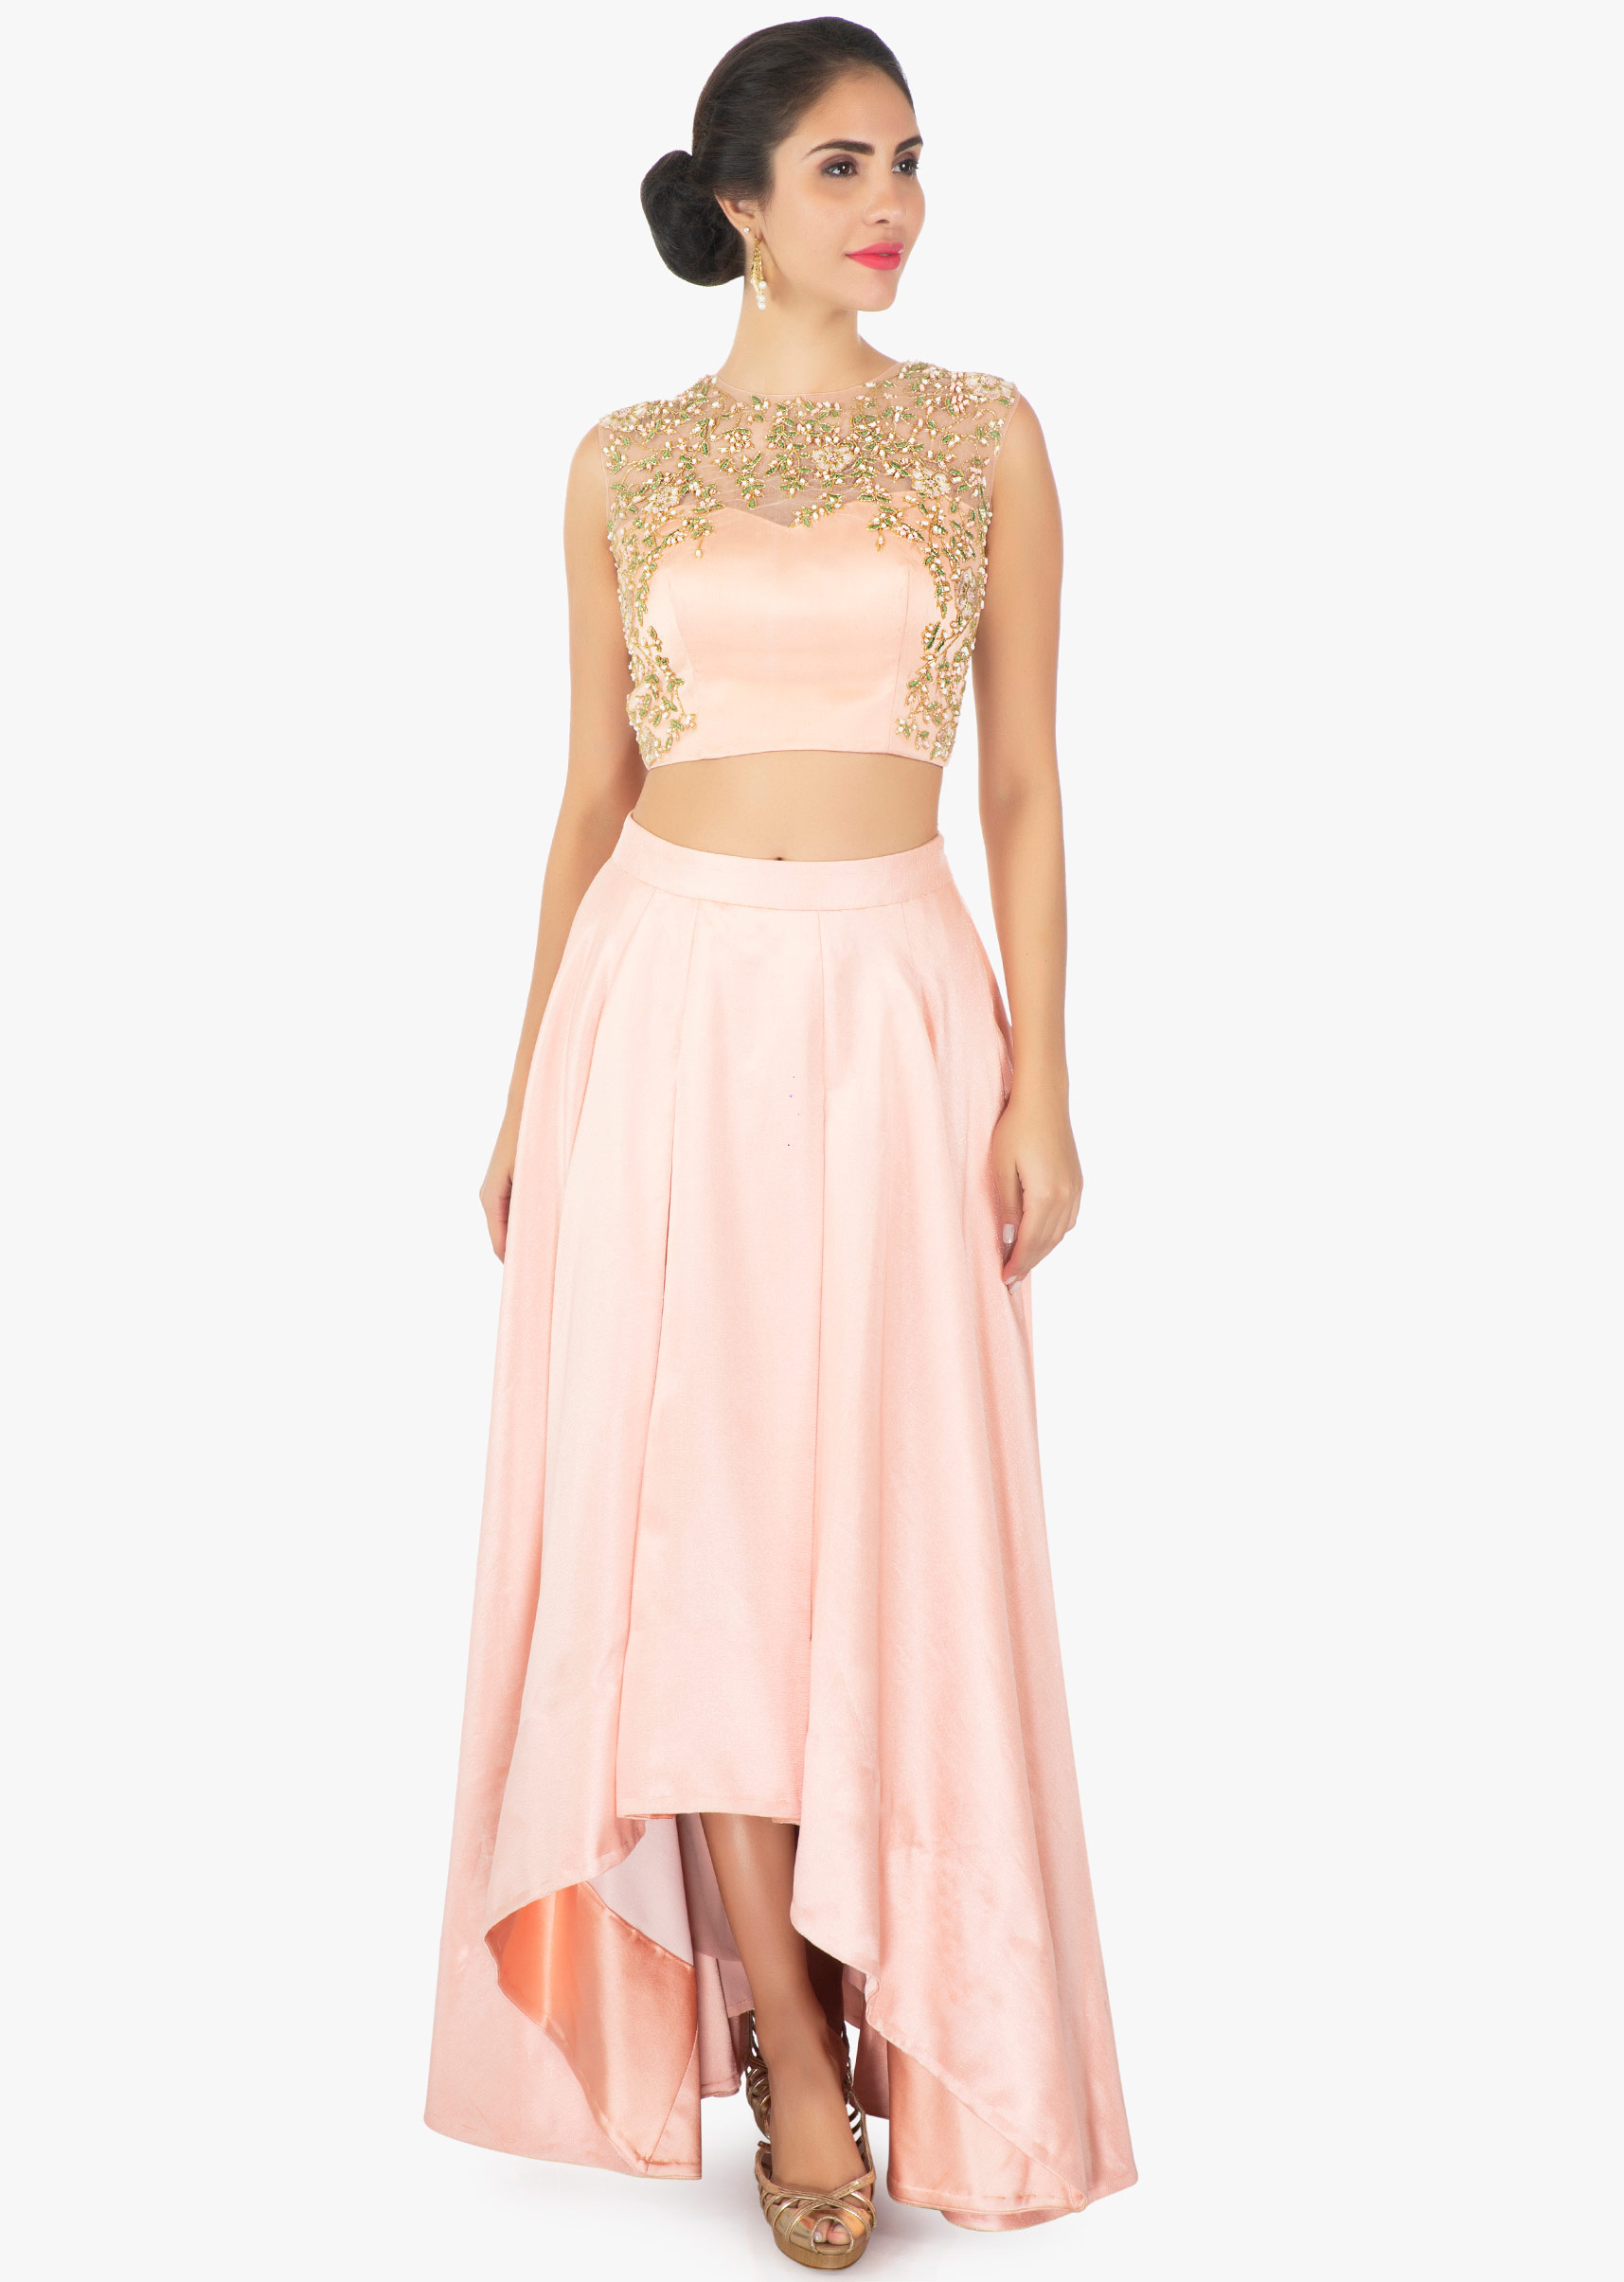 fbe305f9d0f97 Peach satin skirt with a illusion neck satin and net blouse only on KalkiMore  Detail